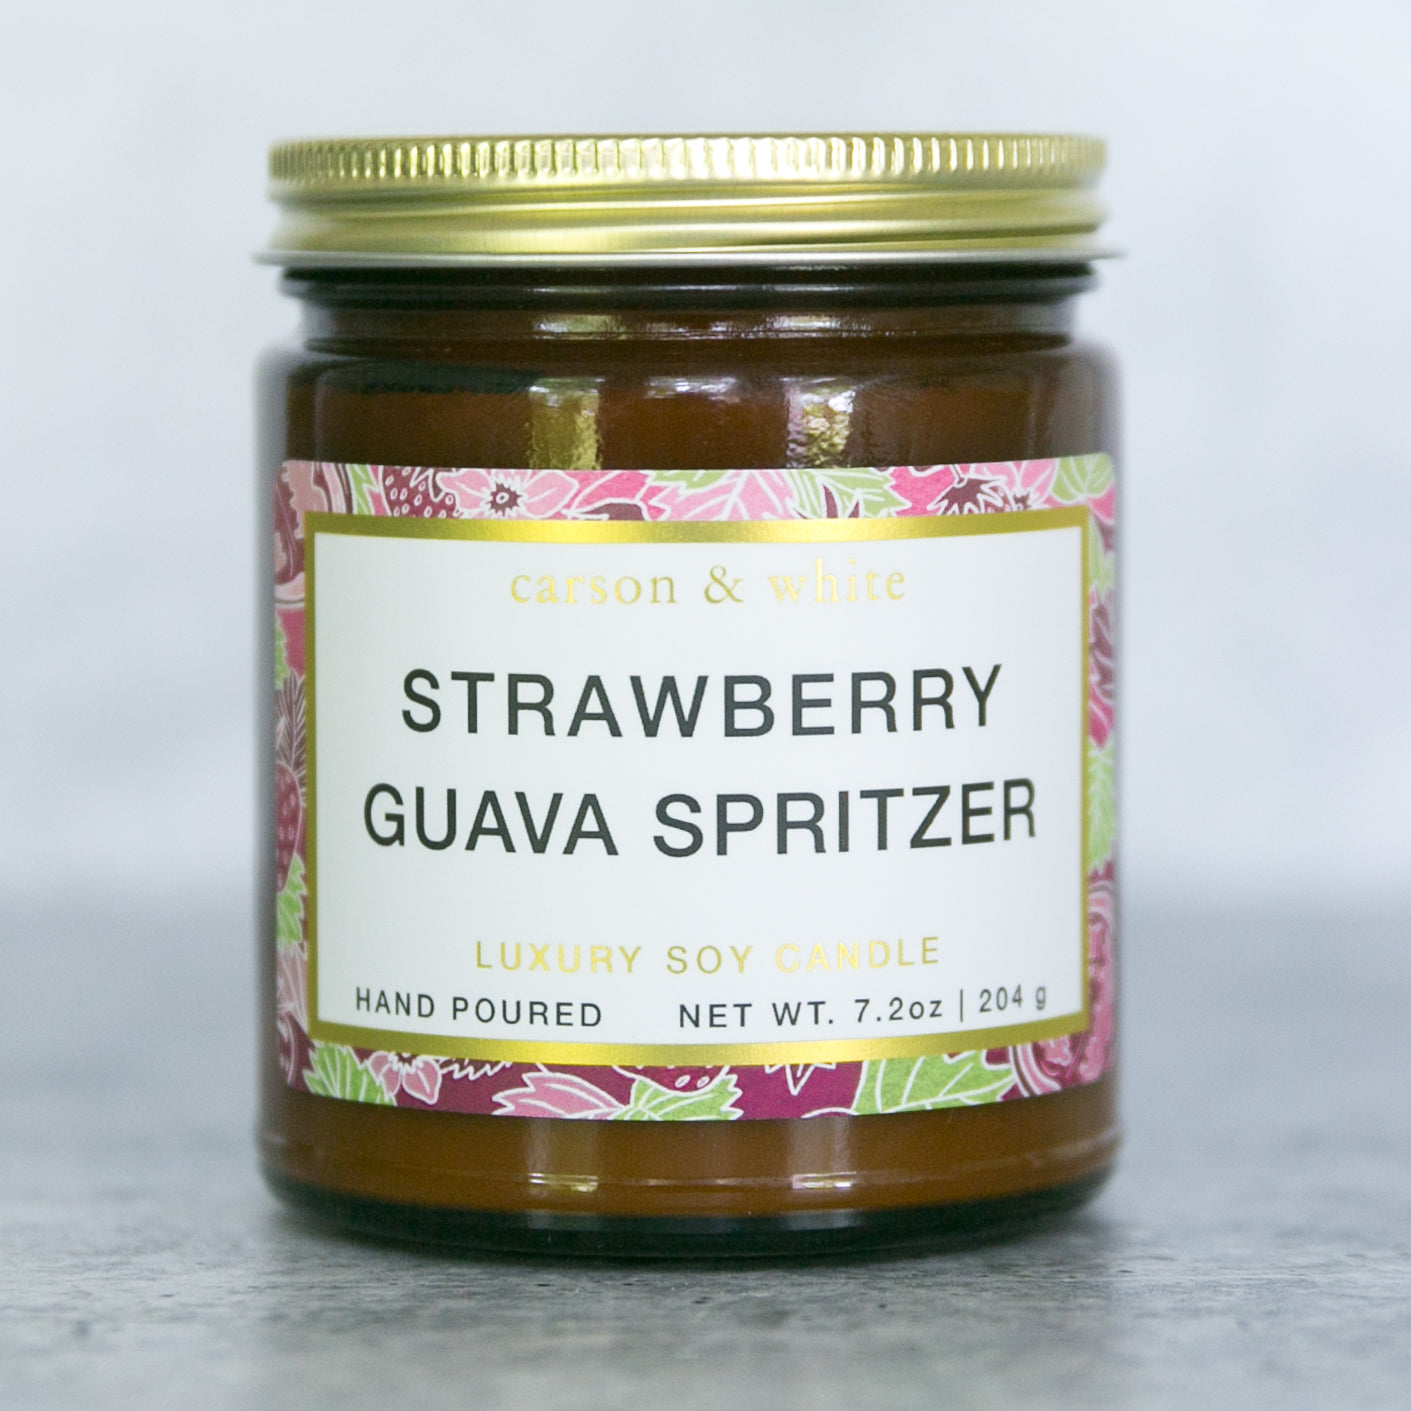 Strawberry Guava Spritzer Soy Candle / Botanical